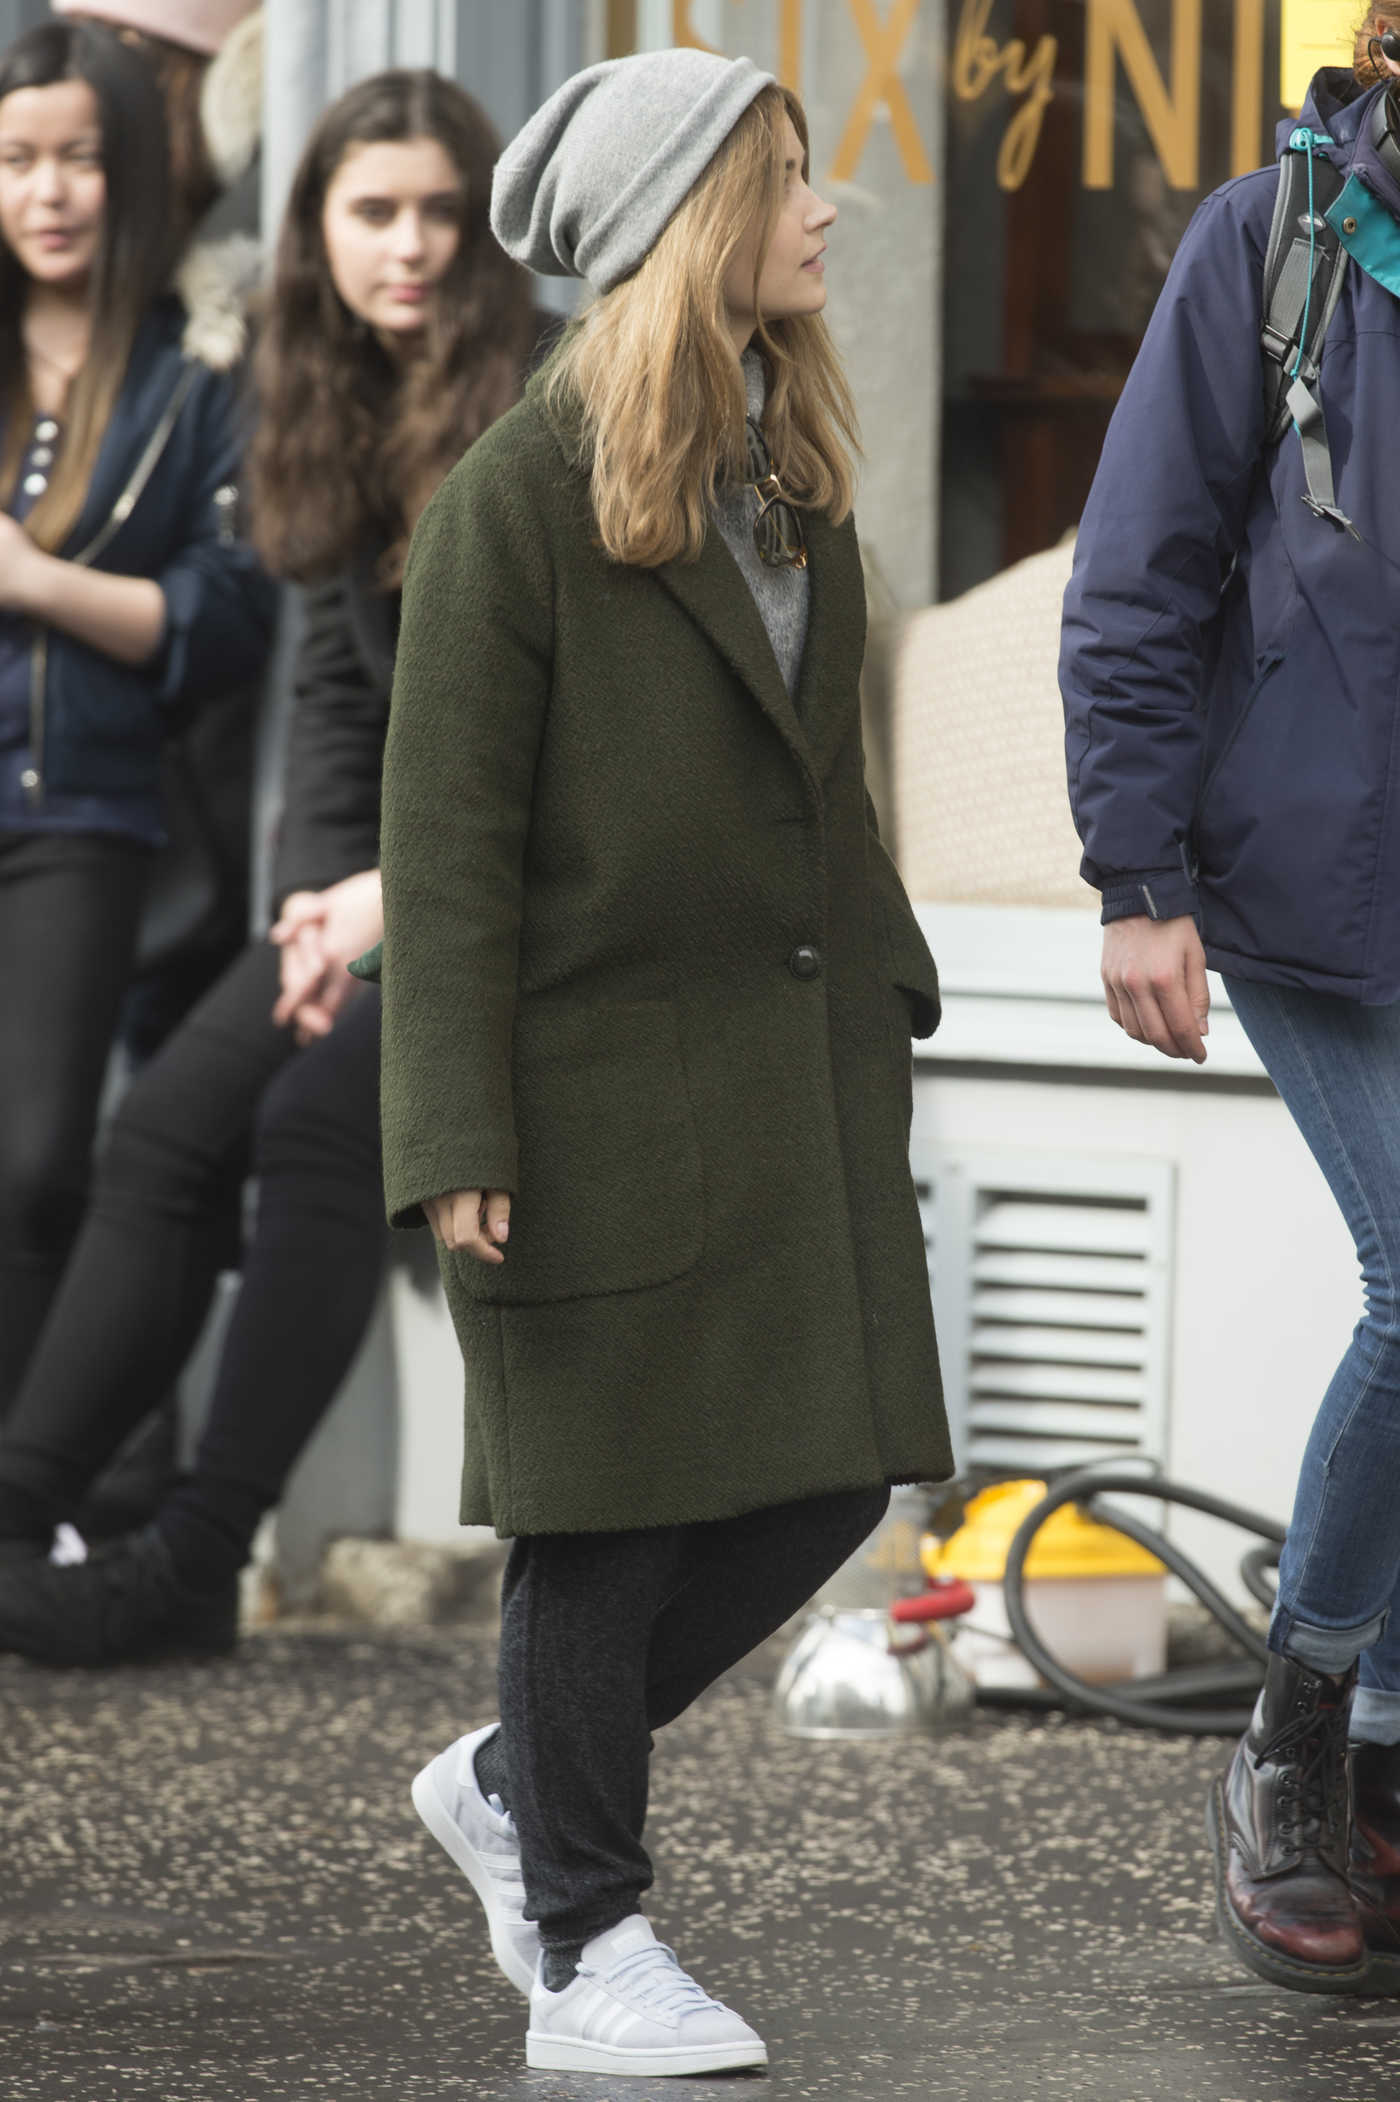 Jenna Coleman on the Set of Her New Drama The Cry in Glasgow 04/09/2018